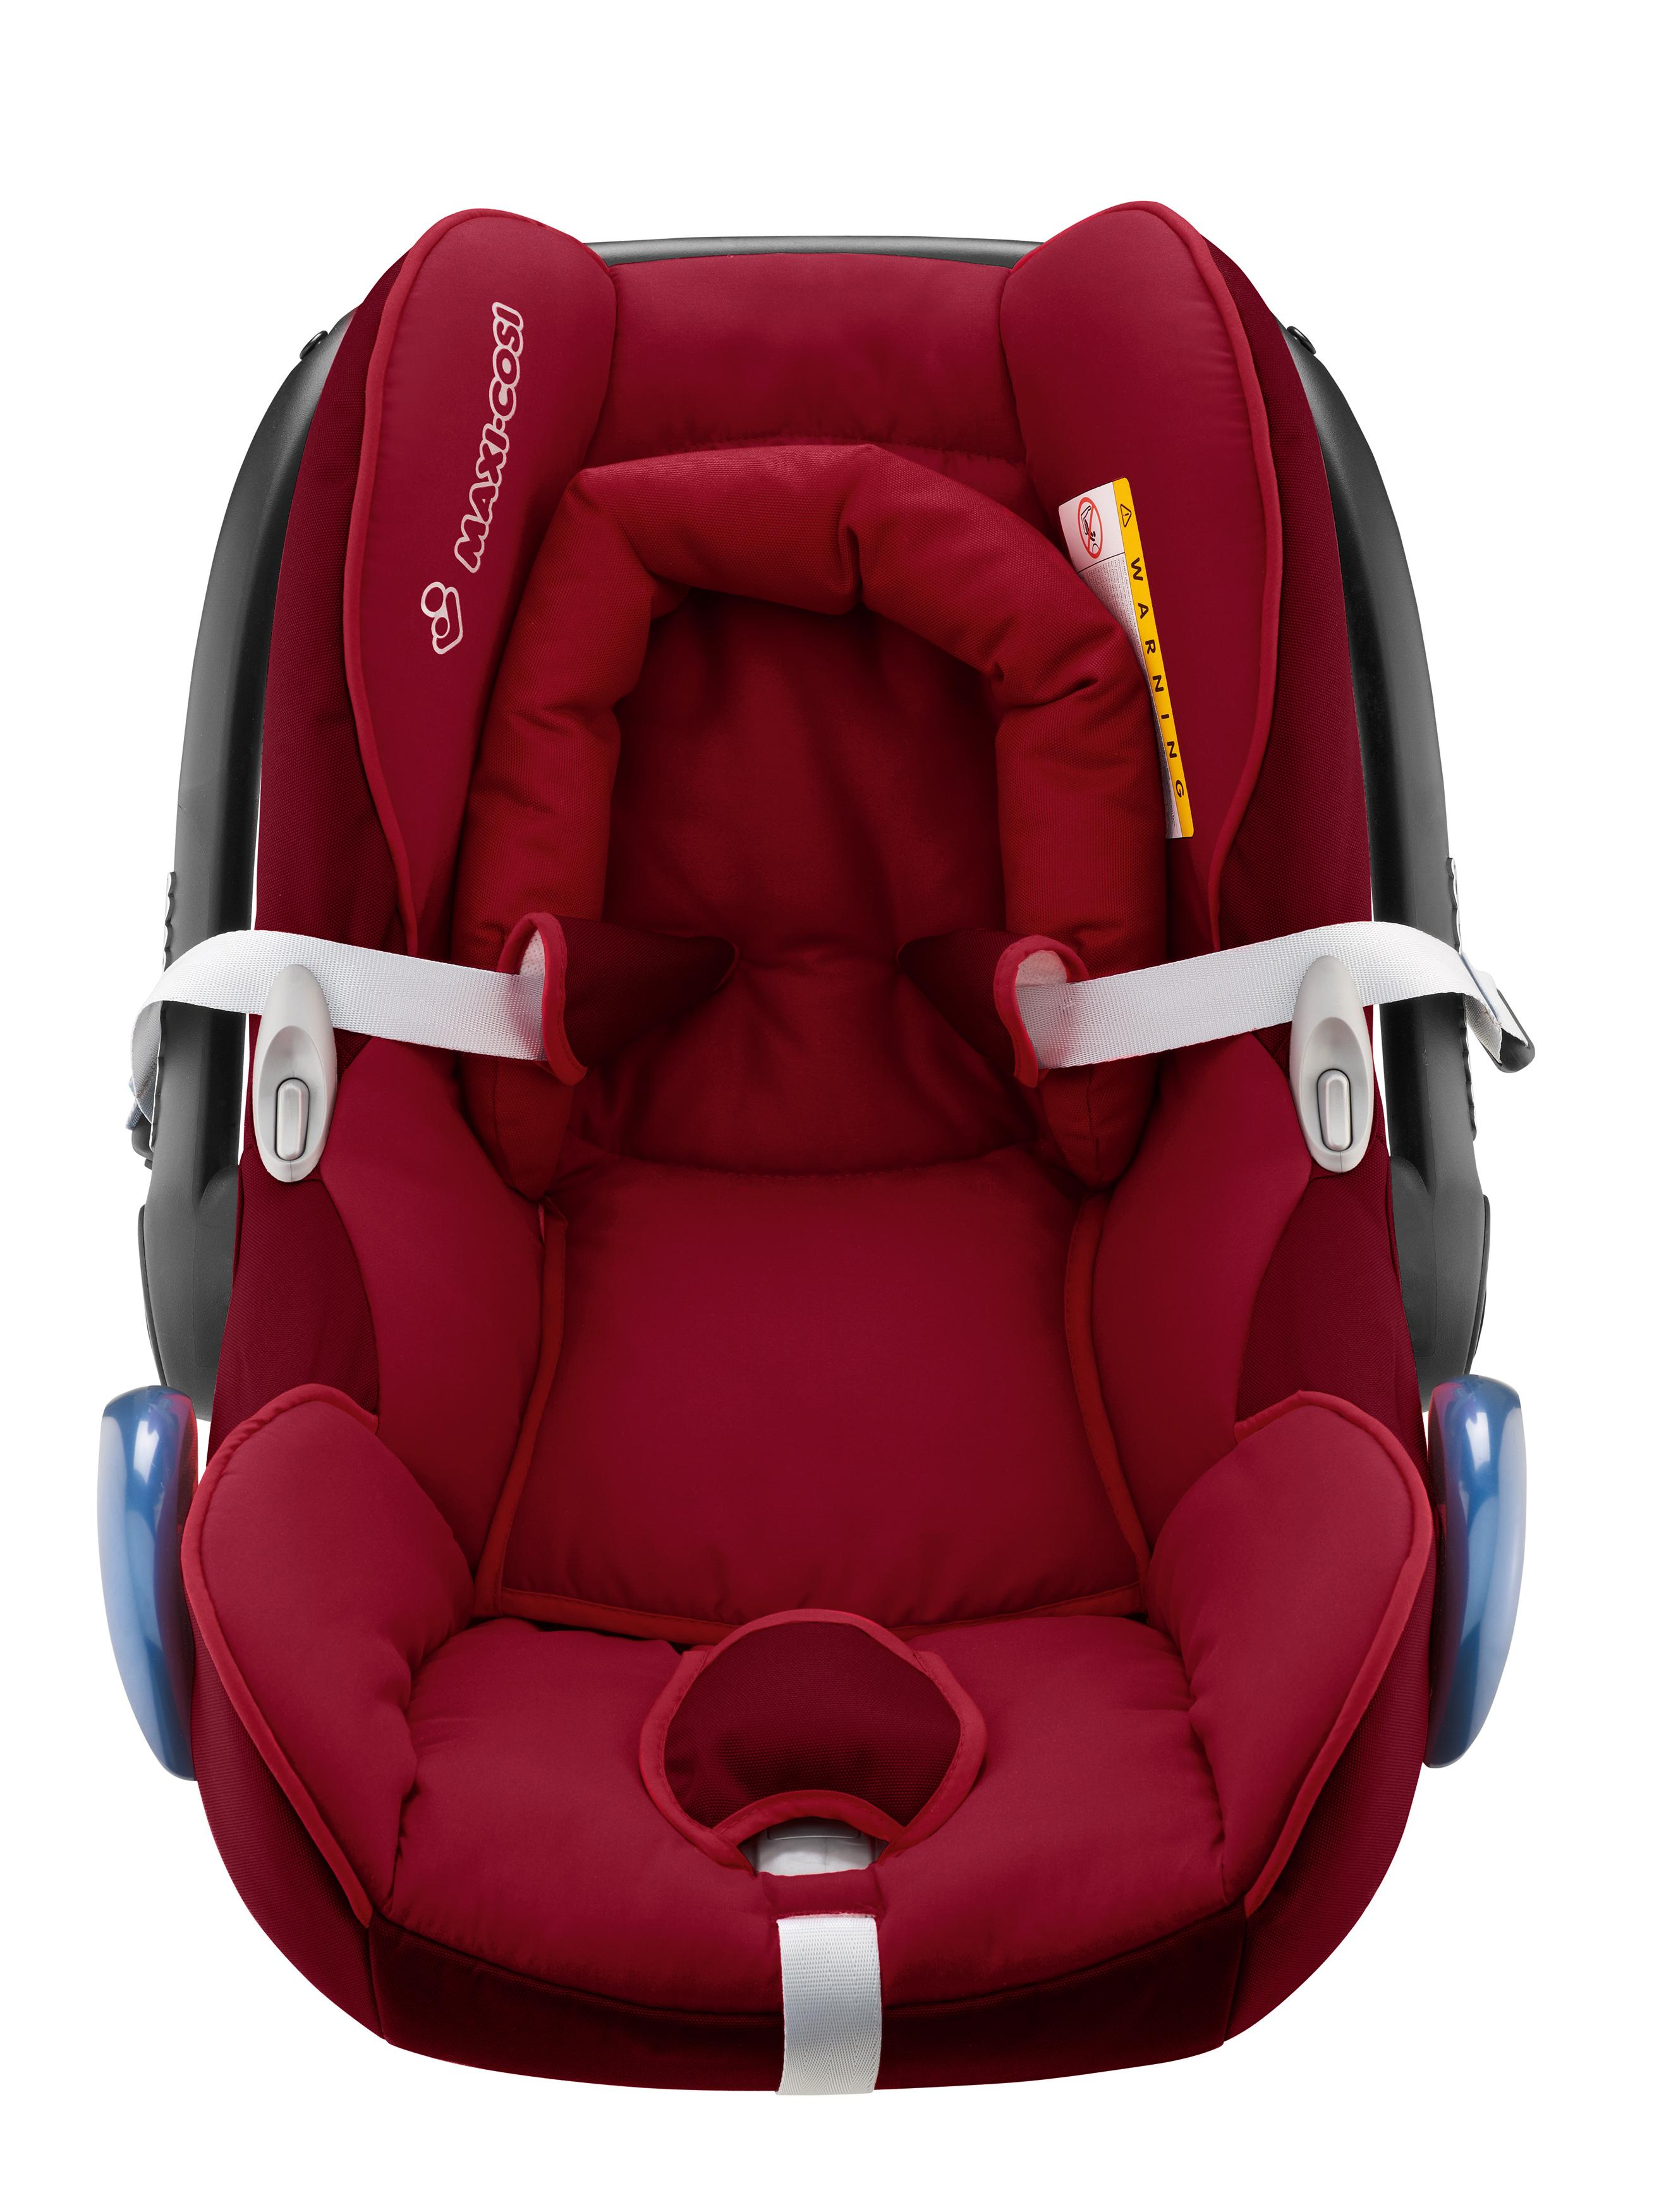 Maxi Cosi Car Seat Cabriofix Manual Maxi Cosi Cabriofix Group Infant Carrier Car Seat